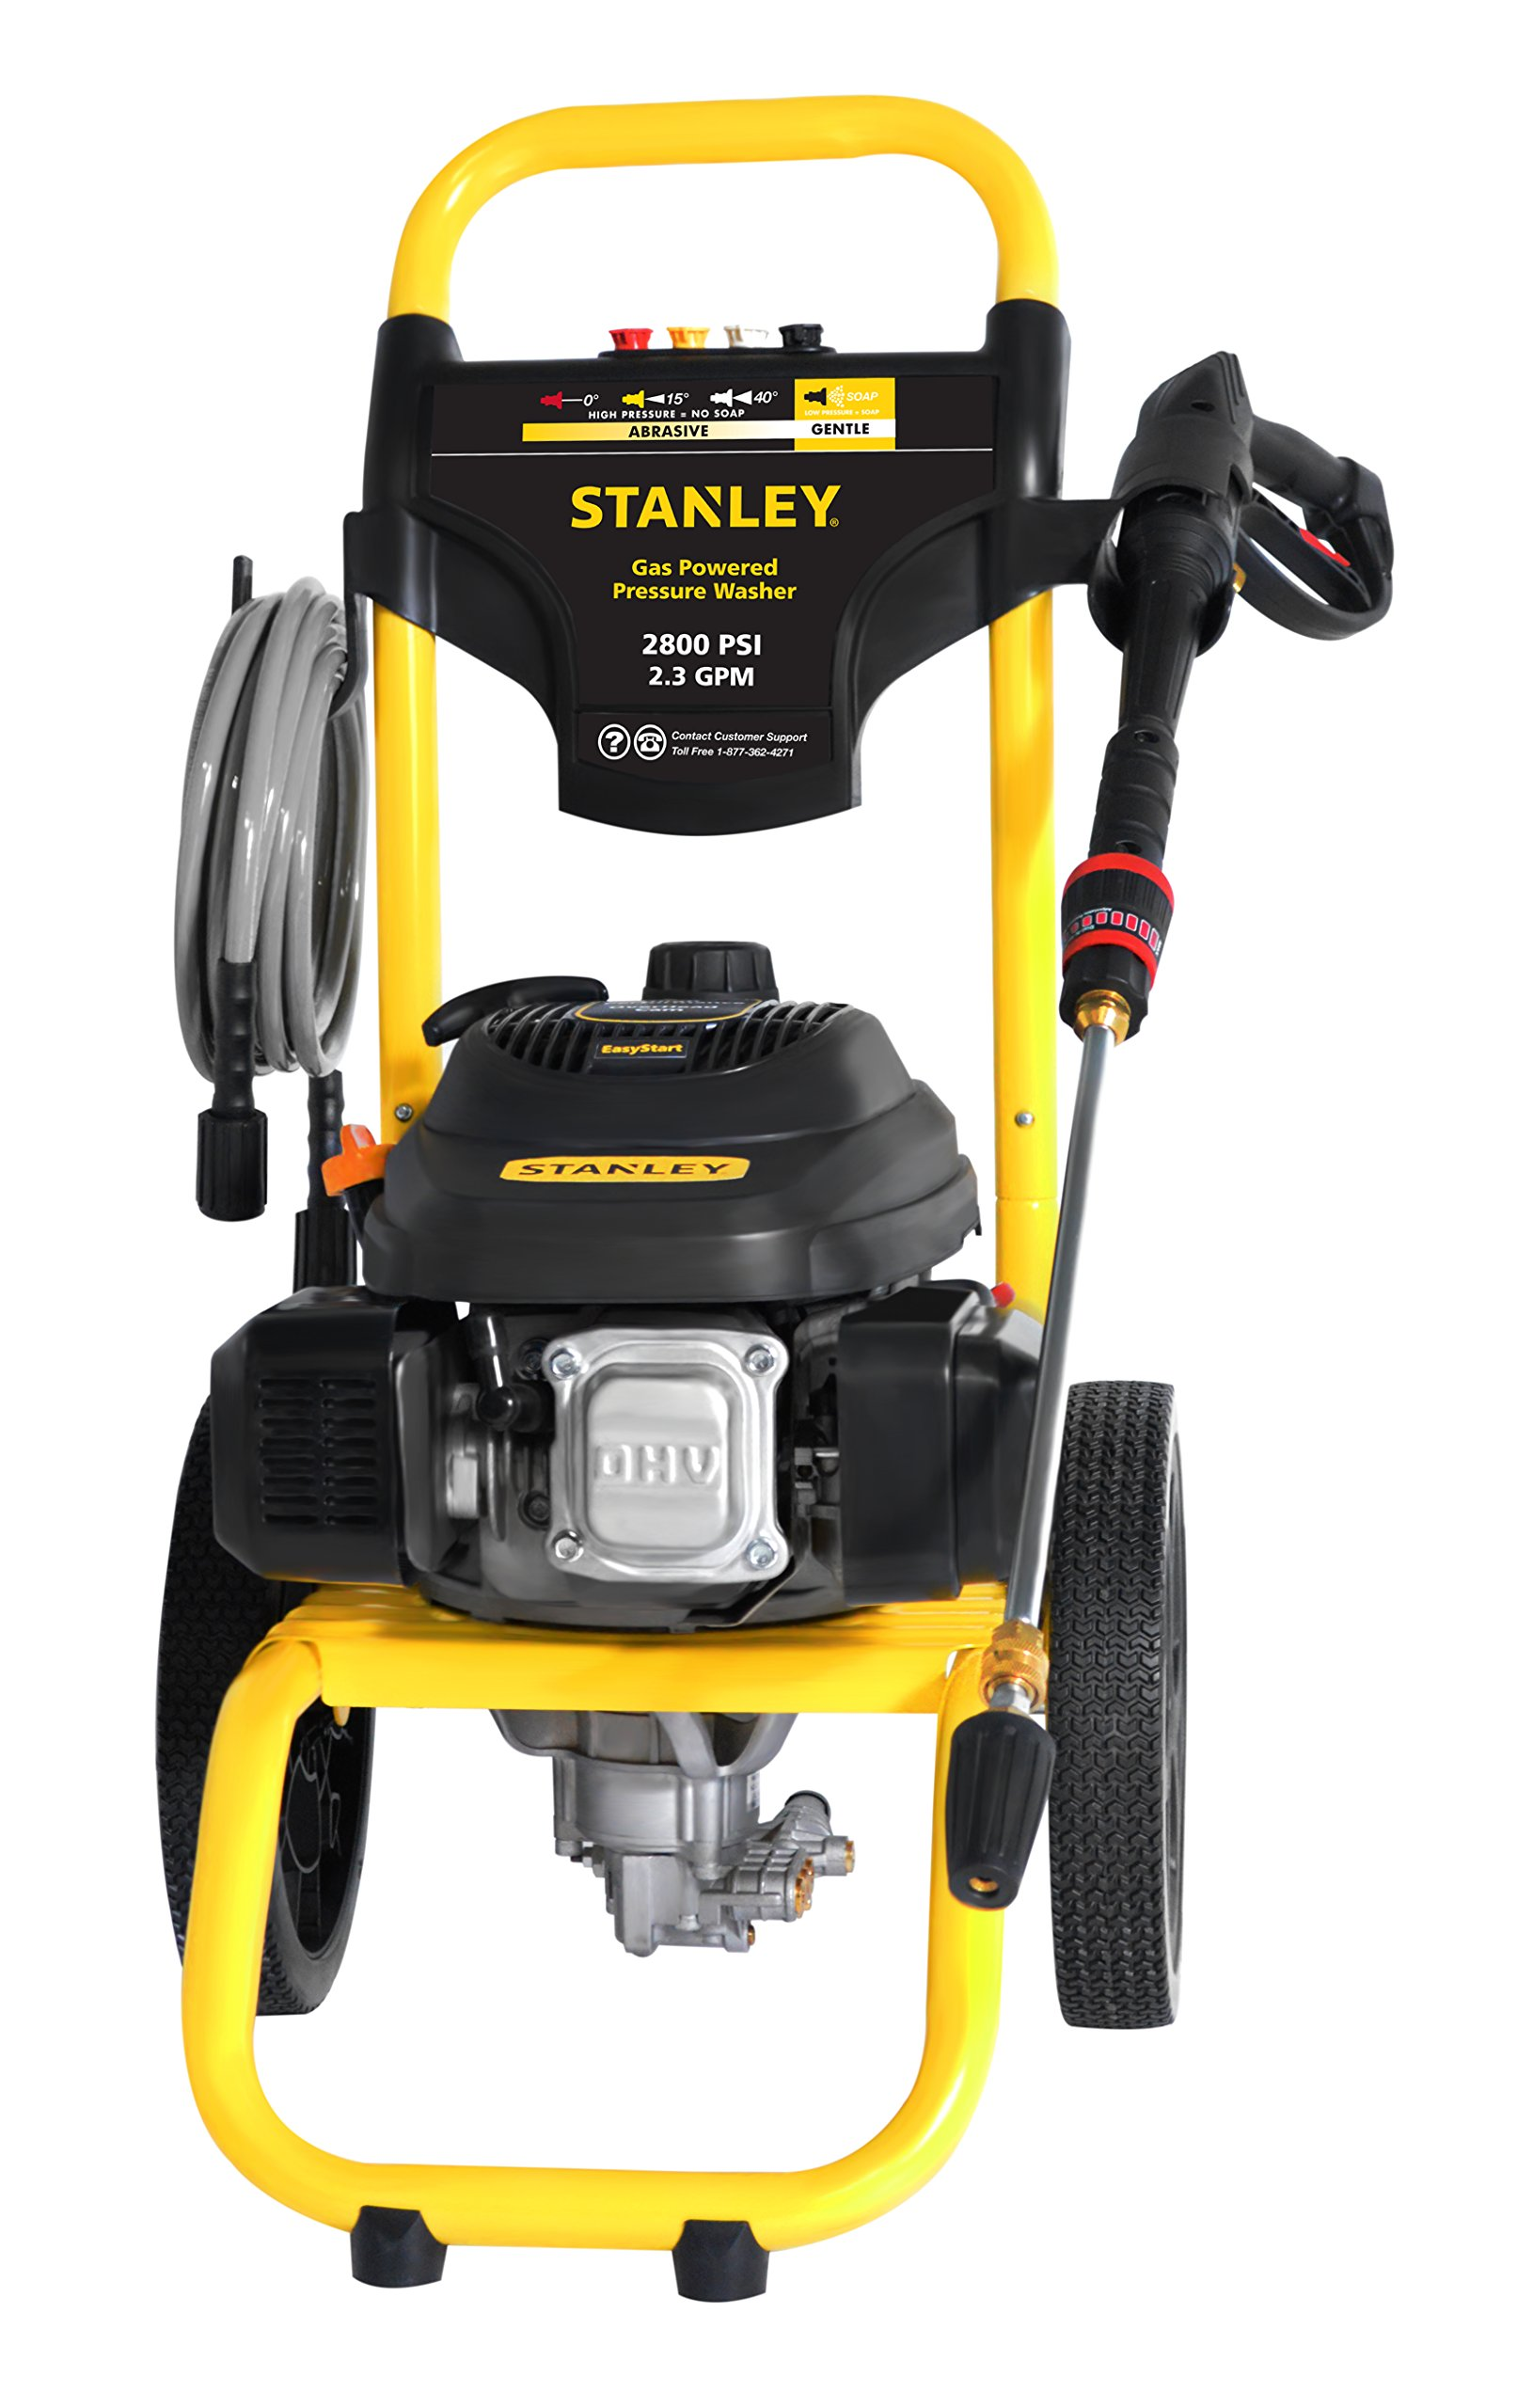 STANLEY SXPW2823 2800 PSI @ 2.3 GPM Gas Pressure Washer Powered by STANLEY (50-State)